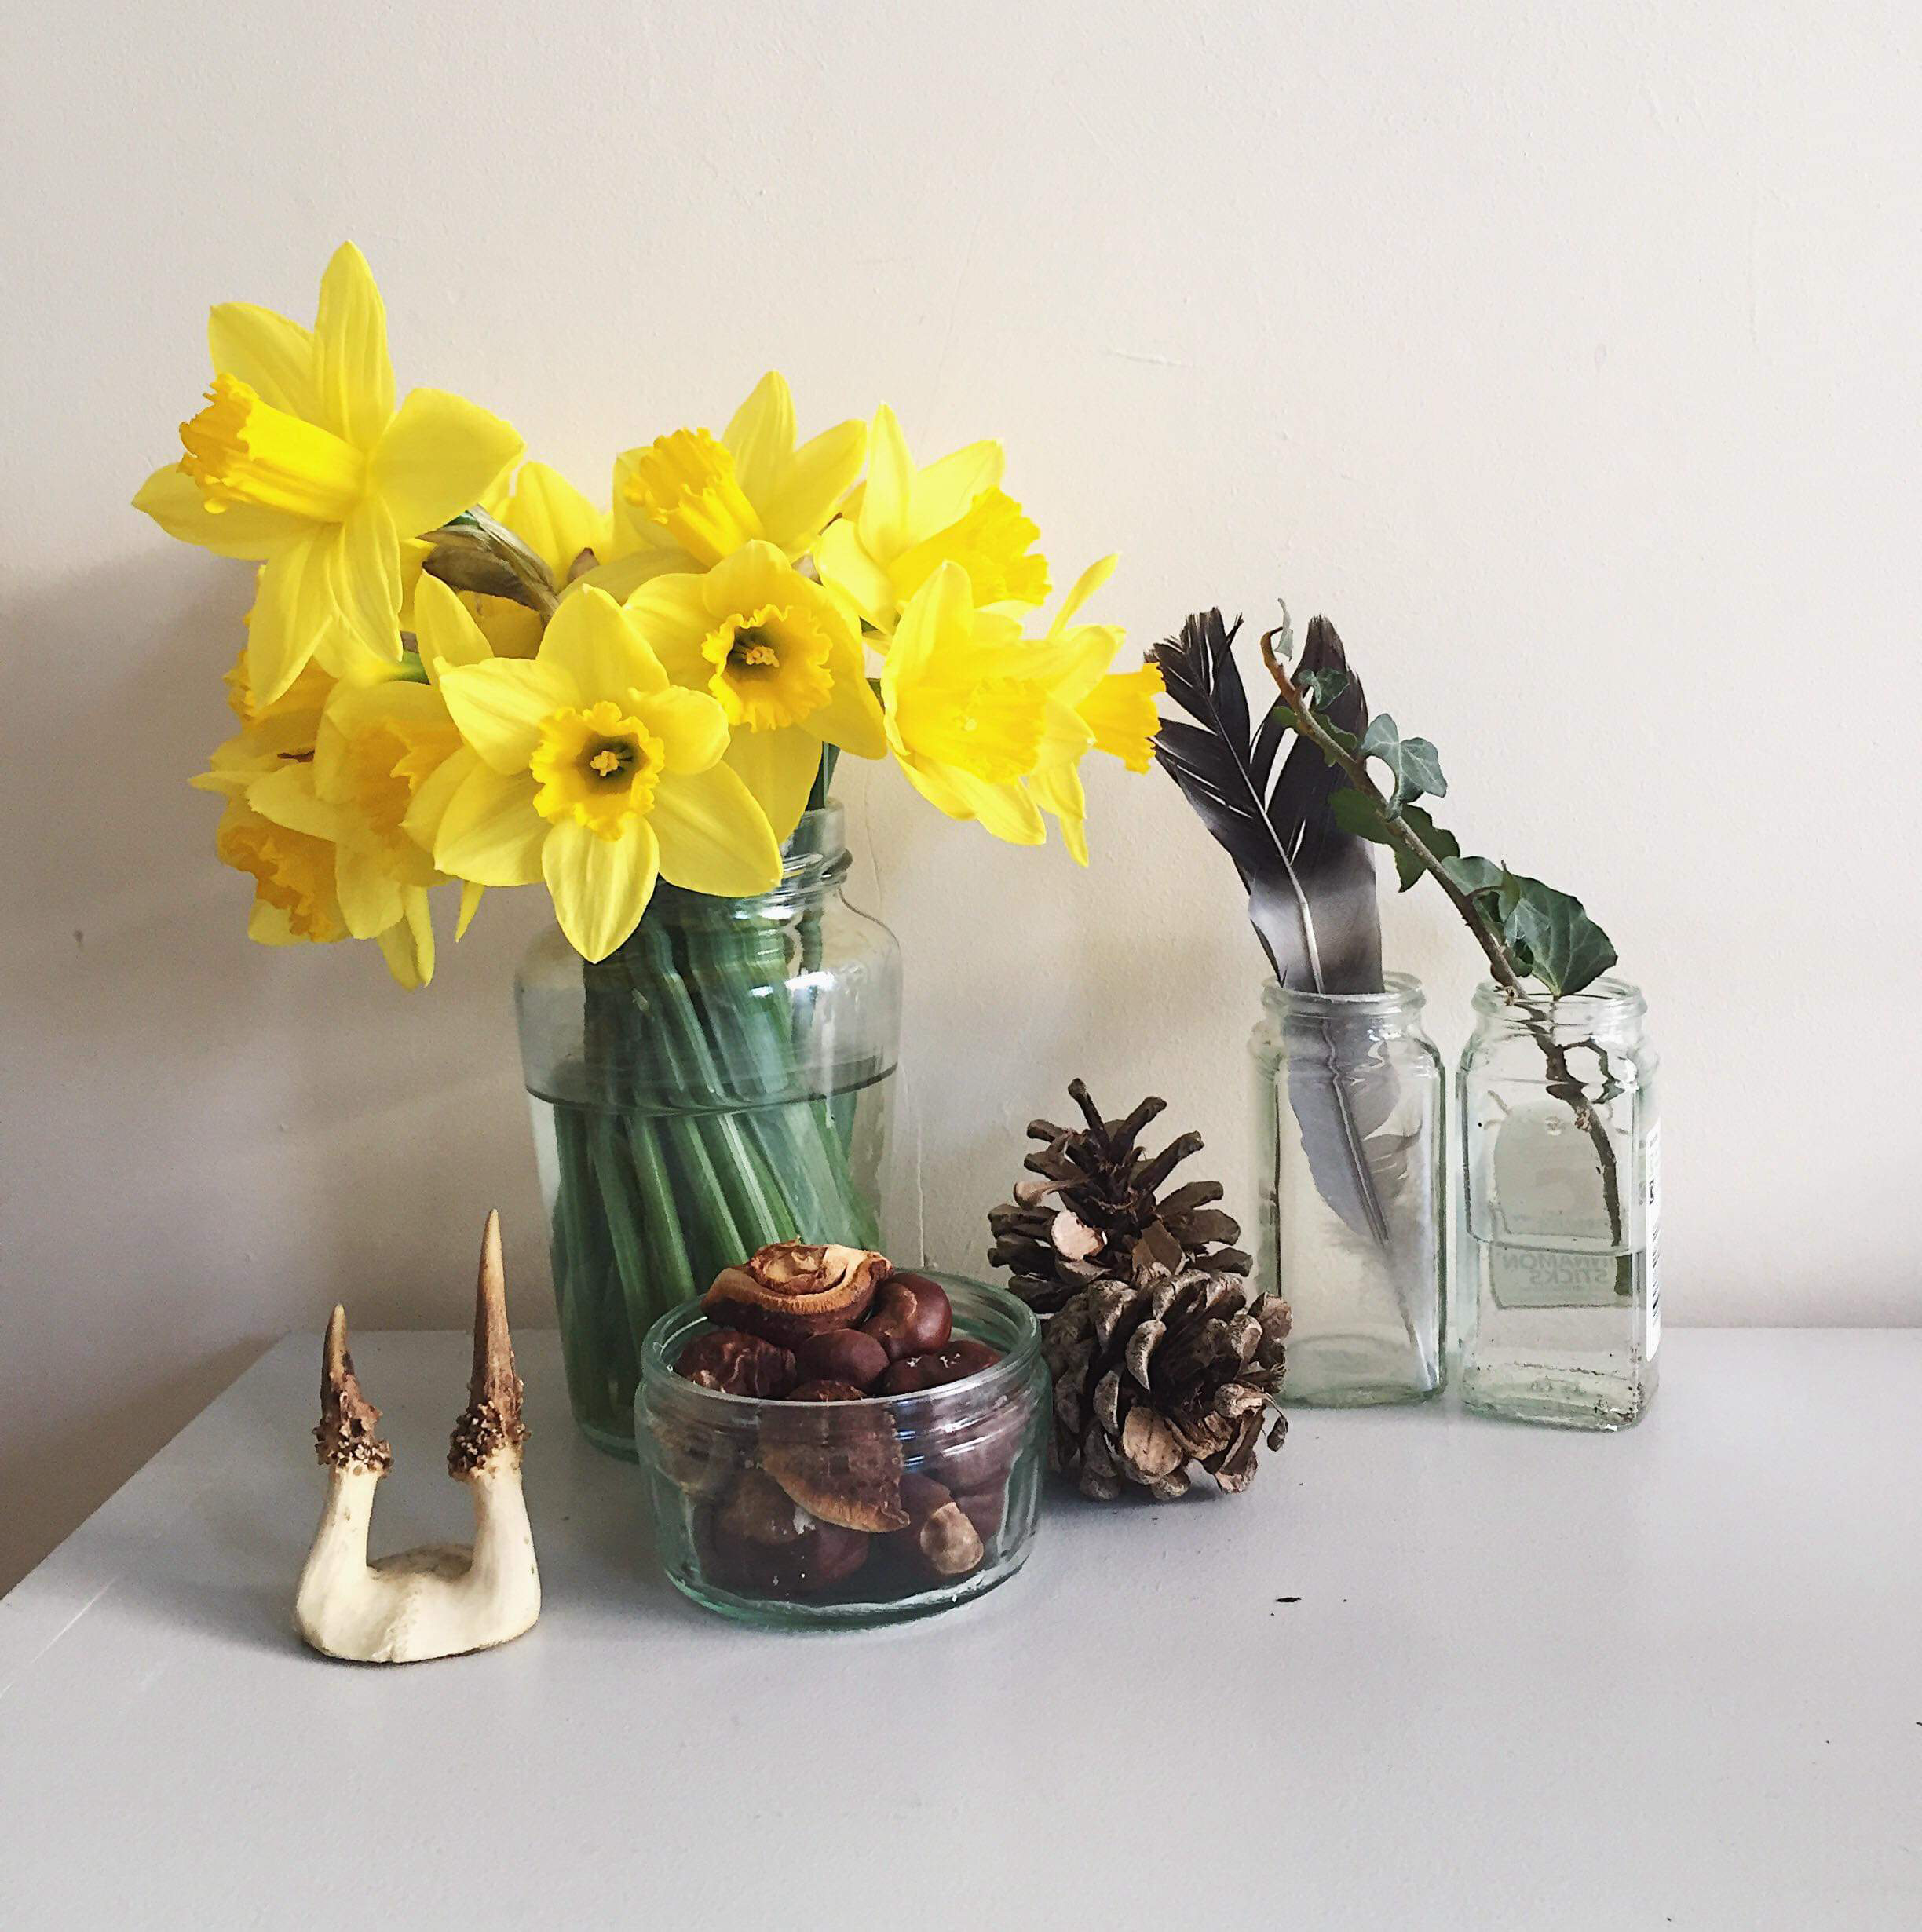 A few natural treasures on a side in the living room; some found conkers, pine cones, a bunch of flowers and a much loved feather that was carried the whole way home.